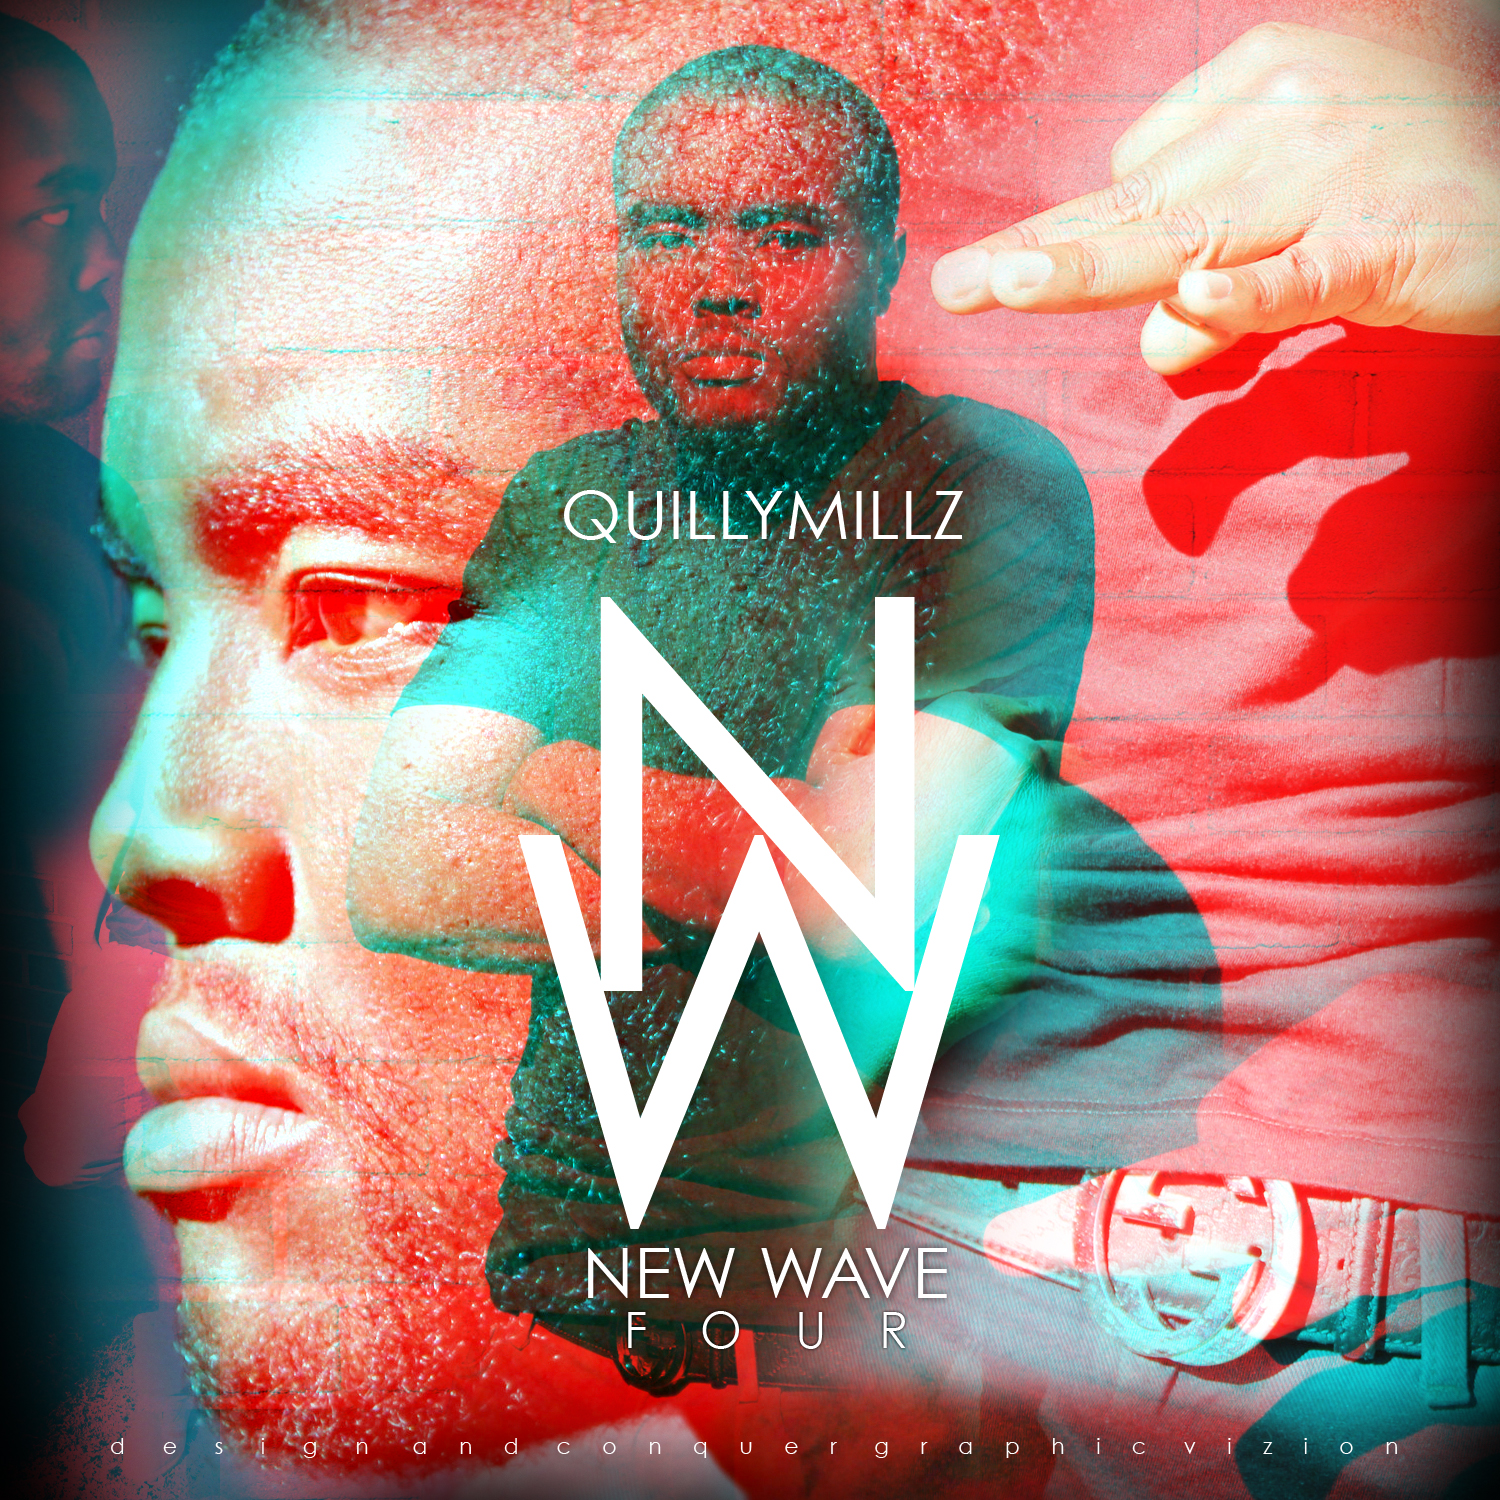 nw45 Quilly Millz - New Wave 4 (Mixtape)